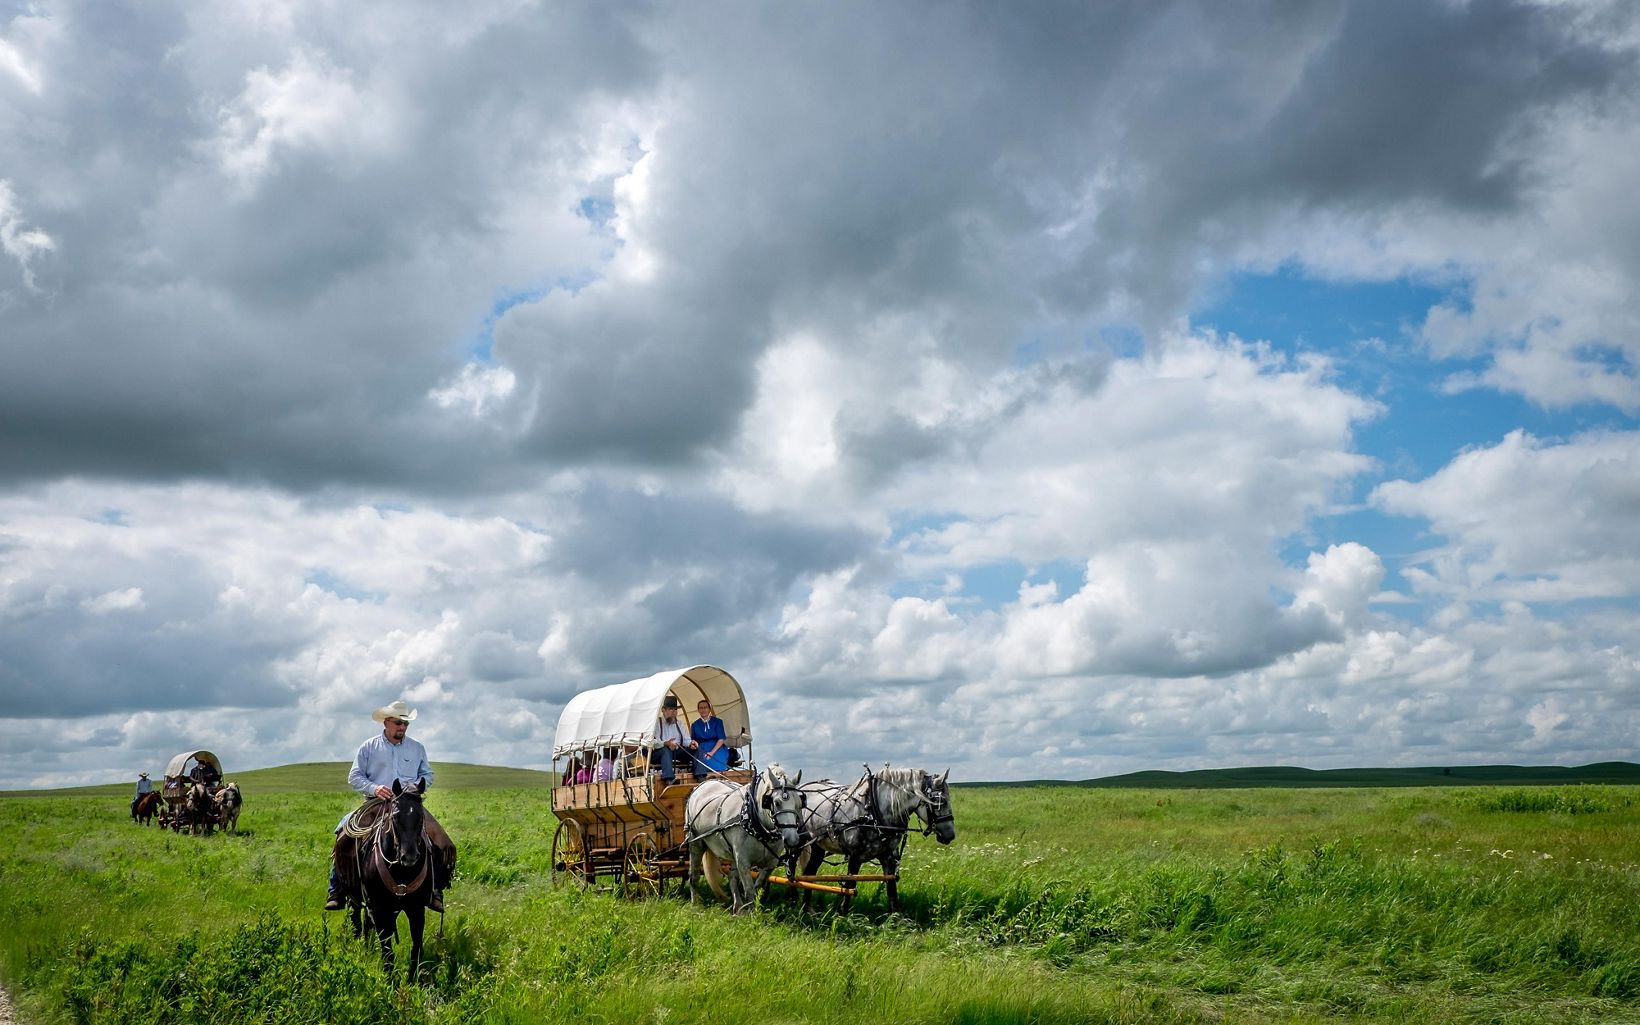 People in covered wagons pulled by horses in a vast open grassland.